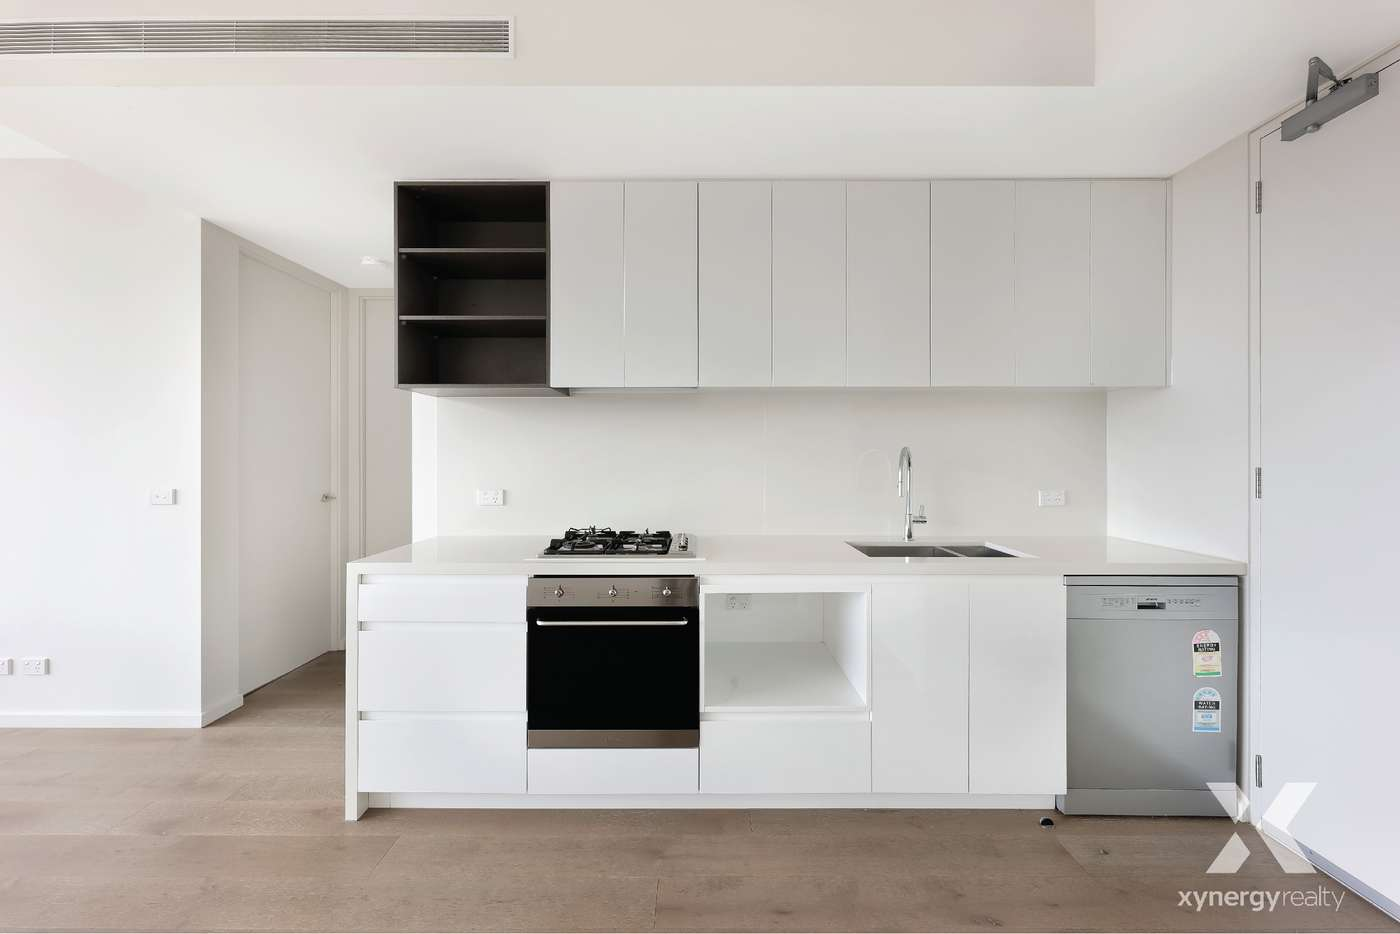 Sixth view of Homely apartment listing, 301/2 Duckett Street, Brunswick VIC 3056